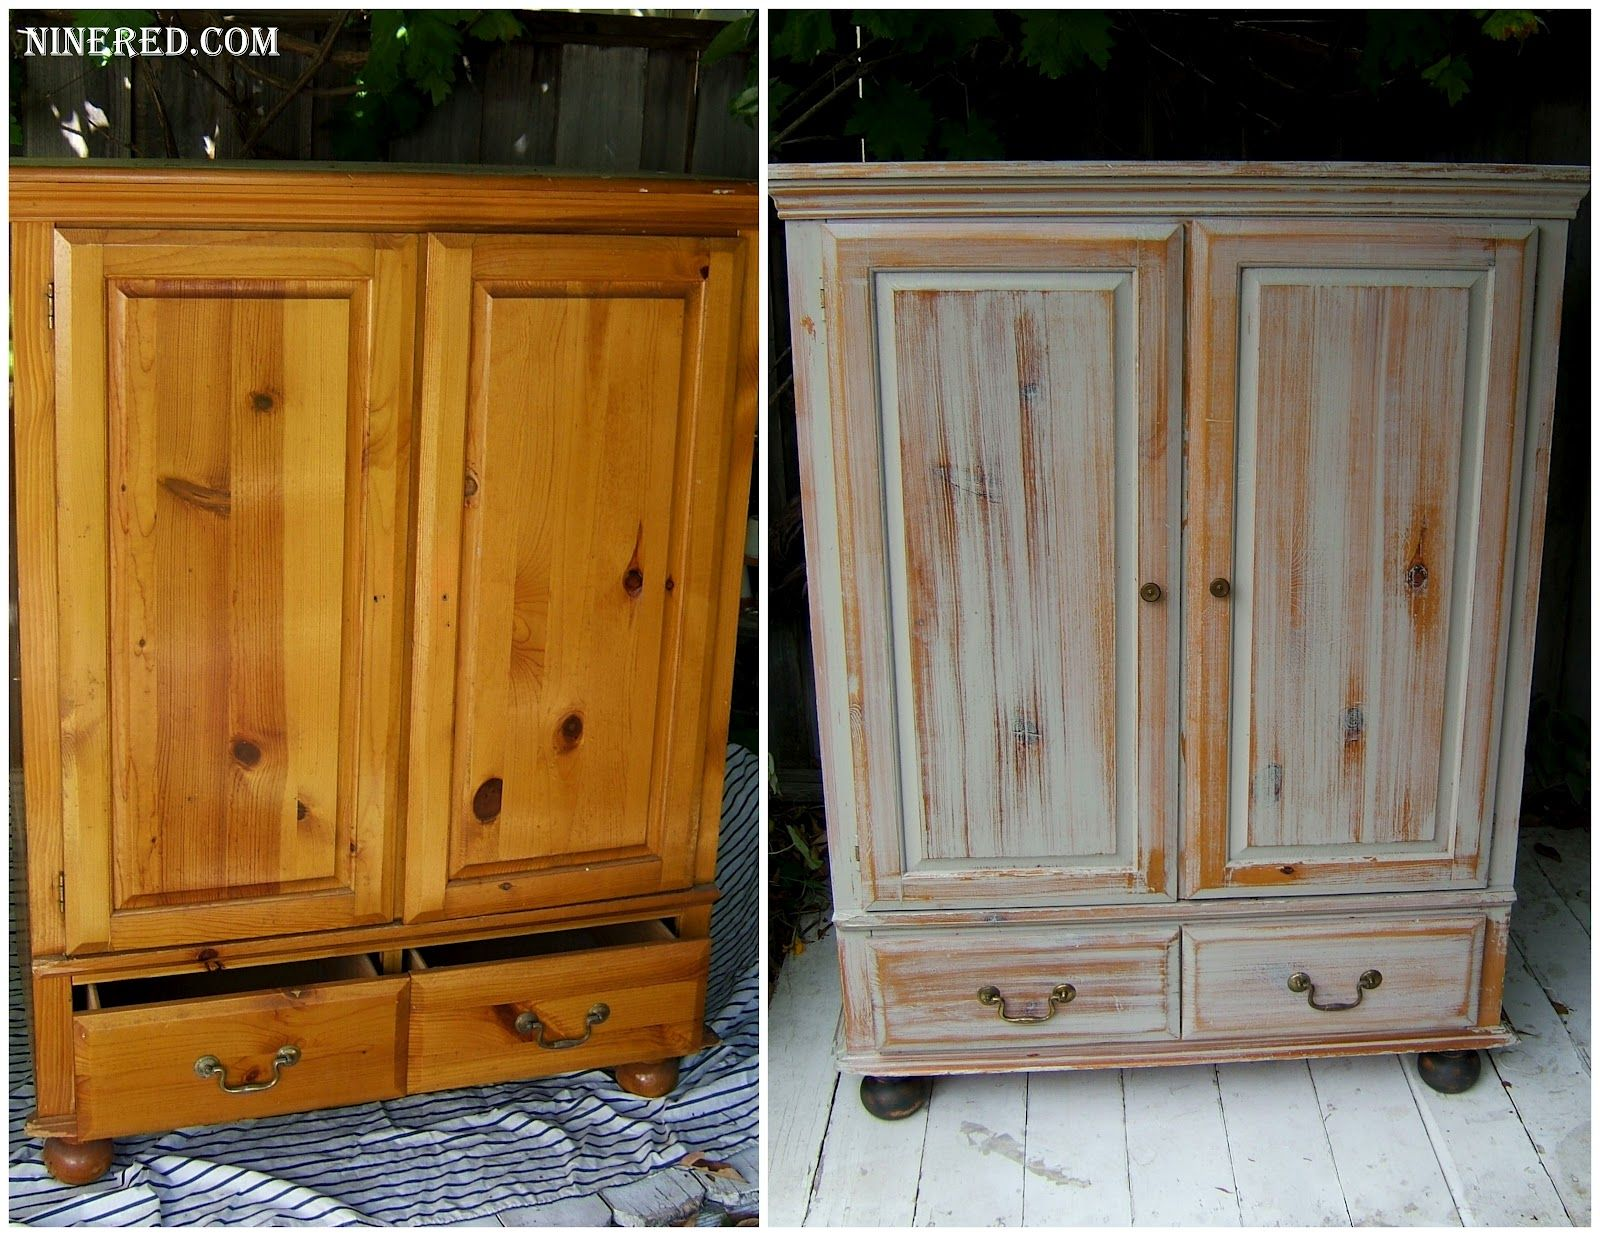 Best way to clean wood furniture -  White Wash For The Built In Cabinets Nine Red School Of Restoration Color Wash